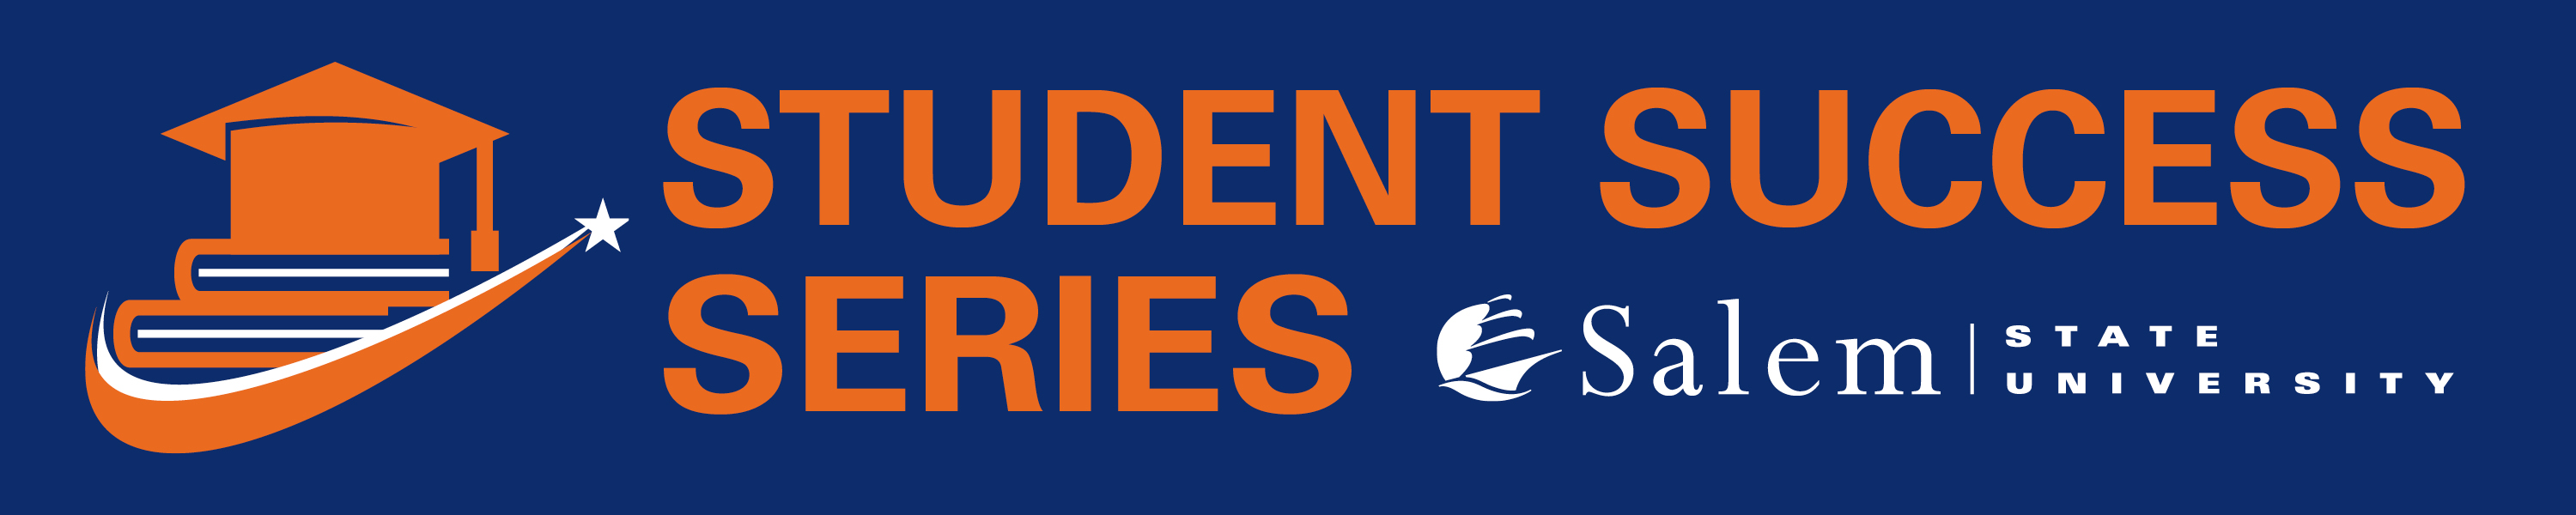 """Graphic with words """"Student Success Series Salem State University"""""""